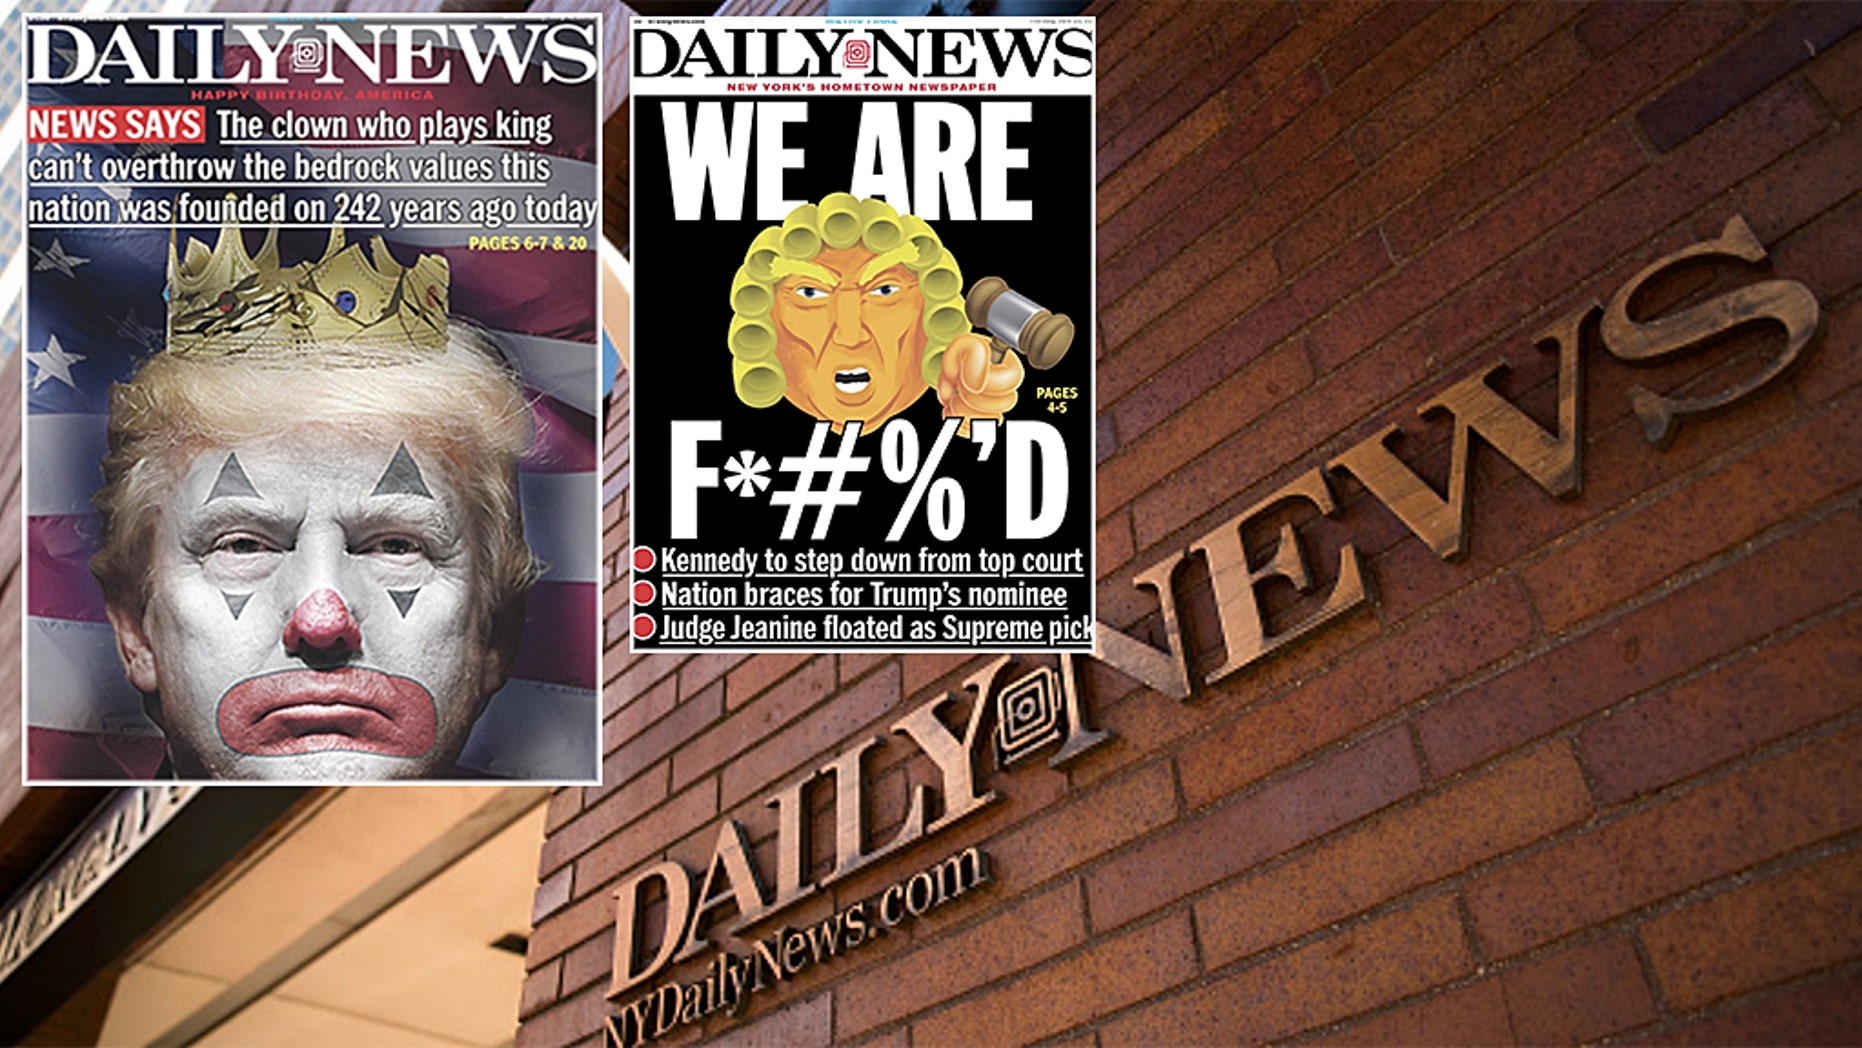 The New York Daily News will let go of roughly 50 percent of its editorial staff.